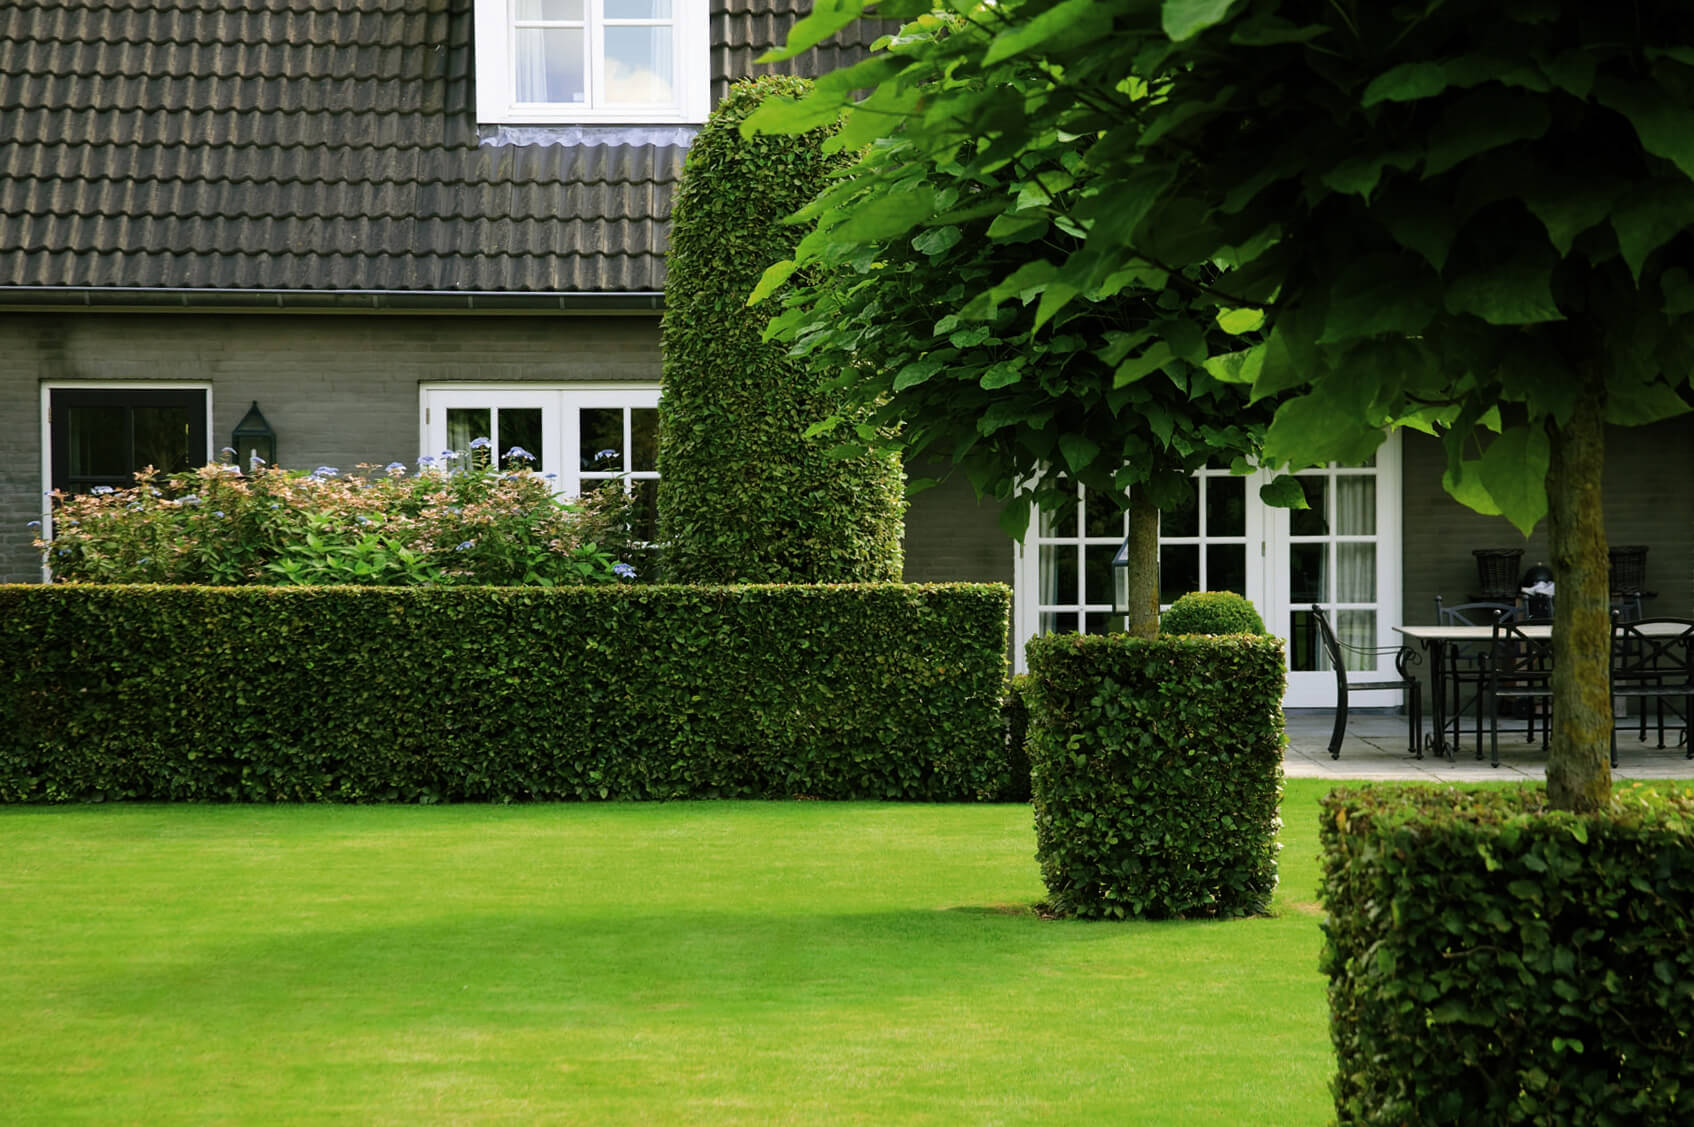 Ready Grown Ivy Hedges 4' tall